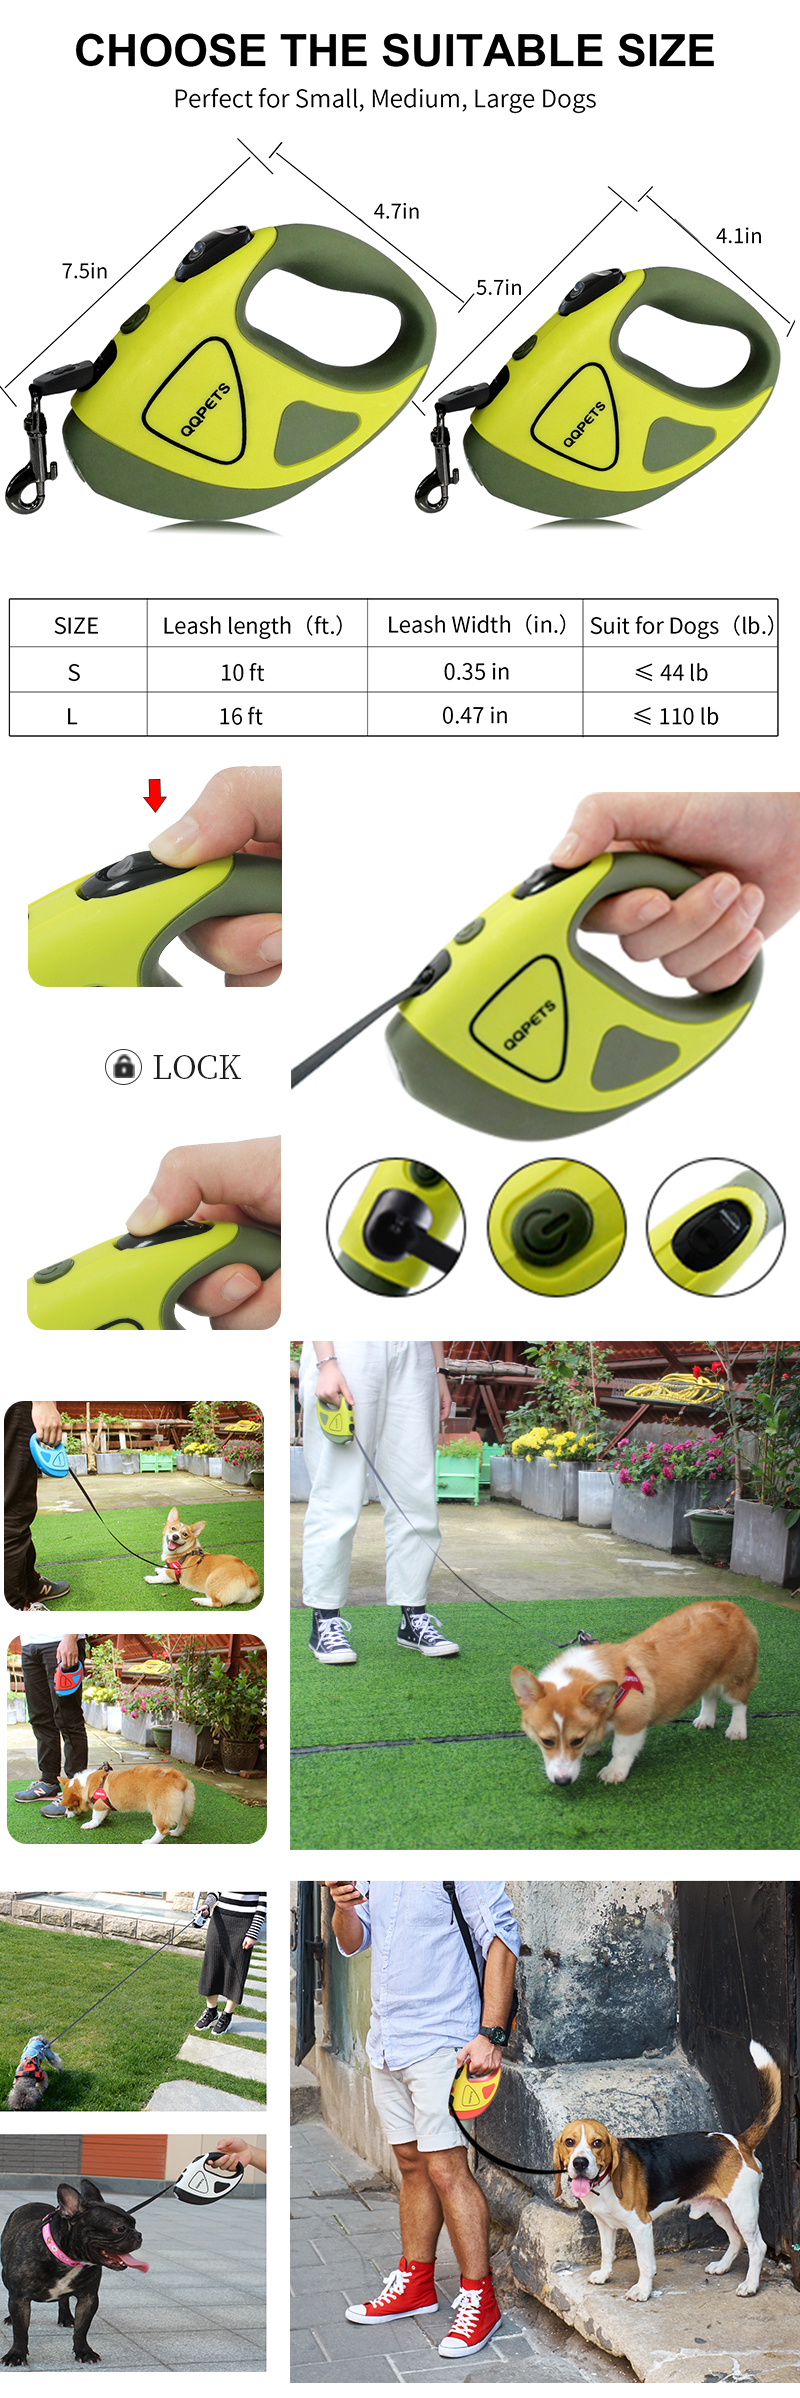 Flexible pets accessories led lighted retractable nylon dog leash